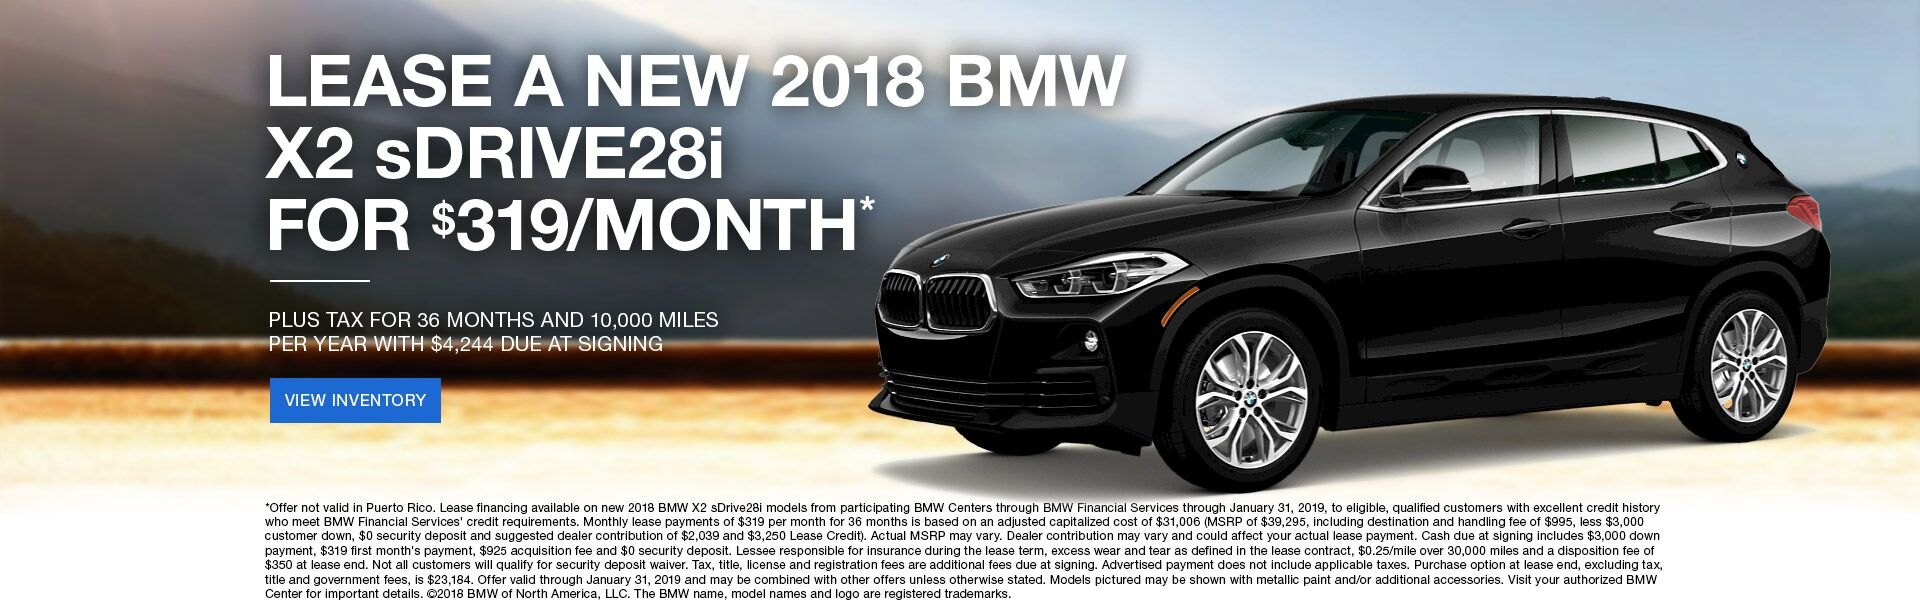 San Luis Obispo Bmw Dealers >> San Luis Obispo Bmw Dealership Serving The Central Coast For 16 Years